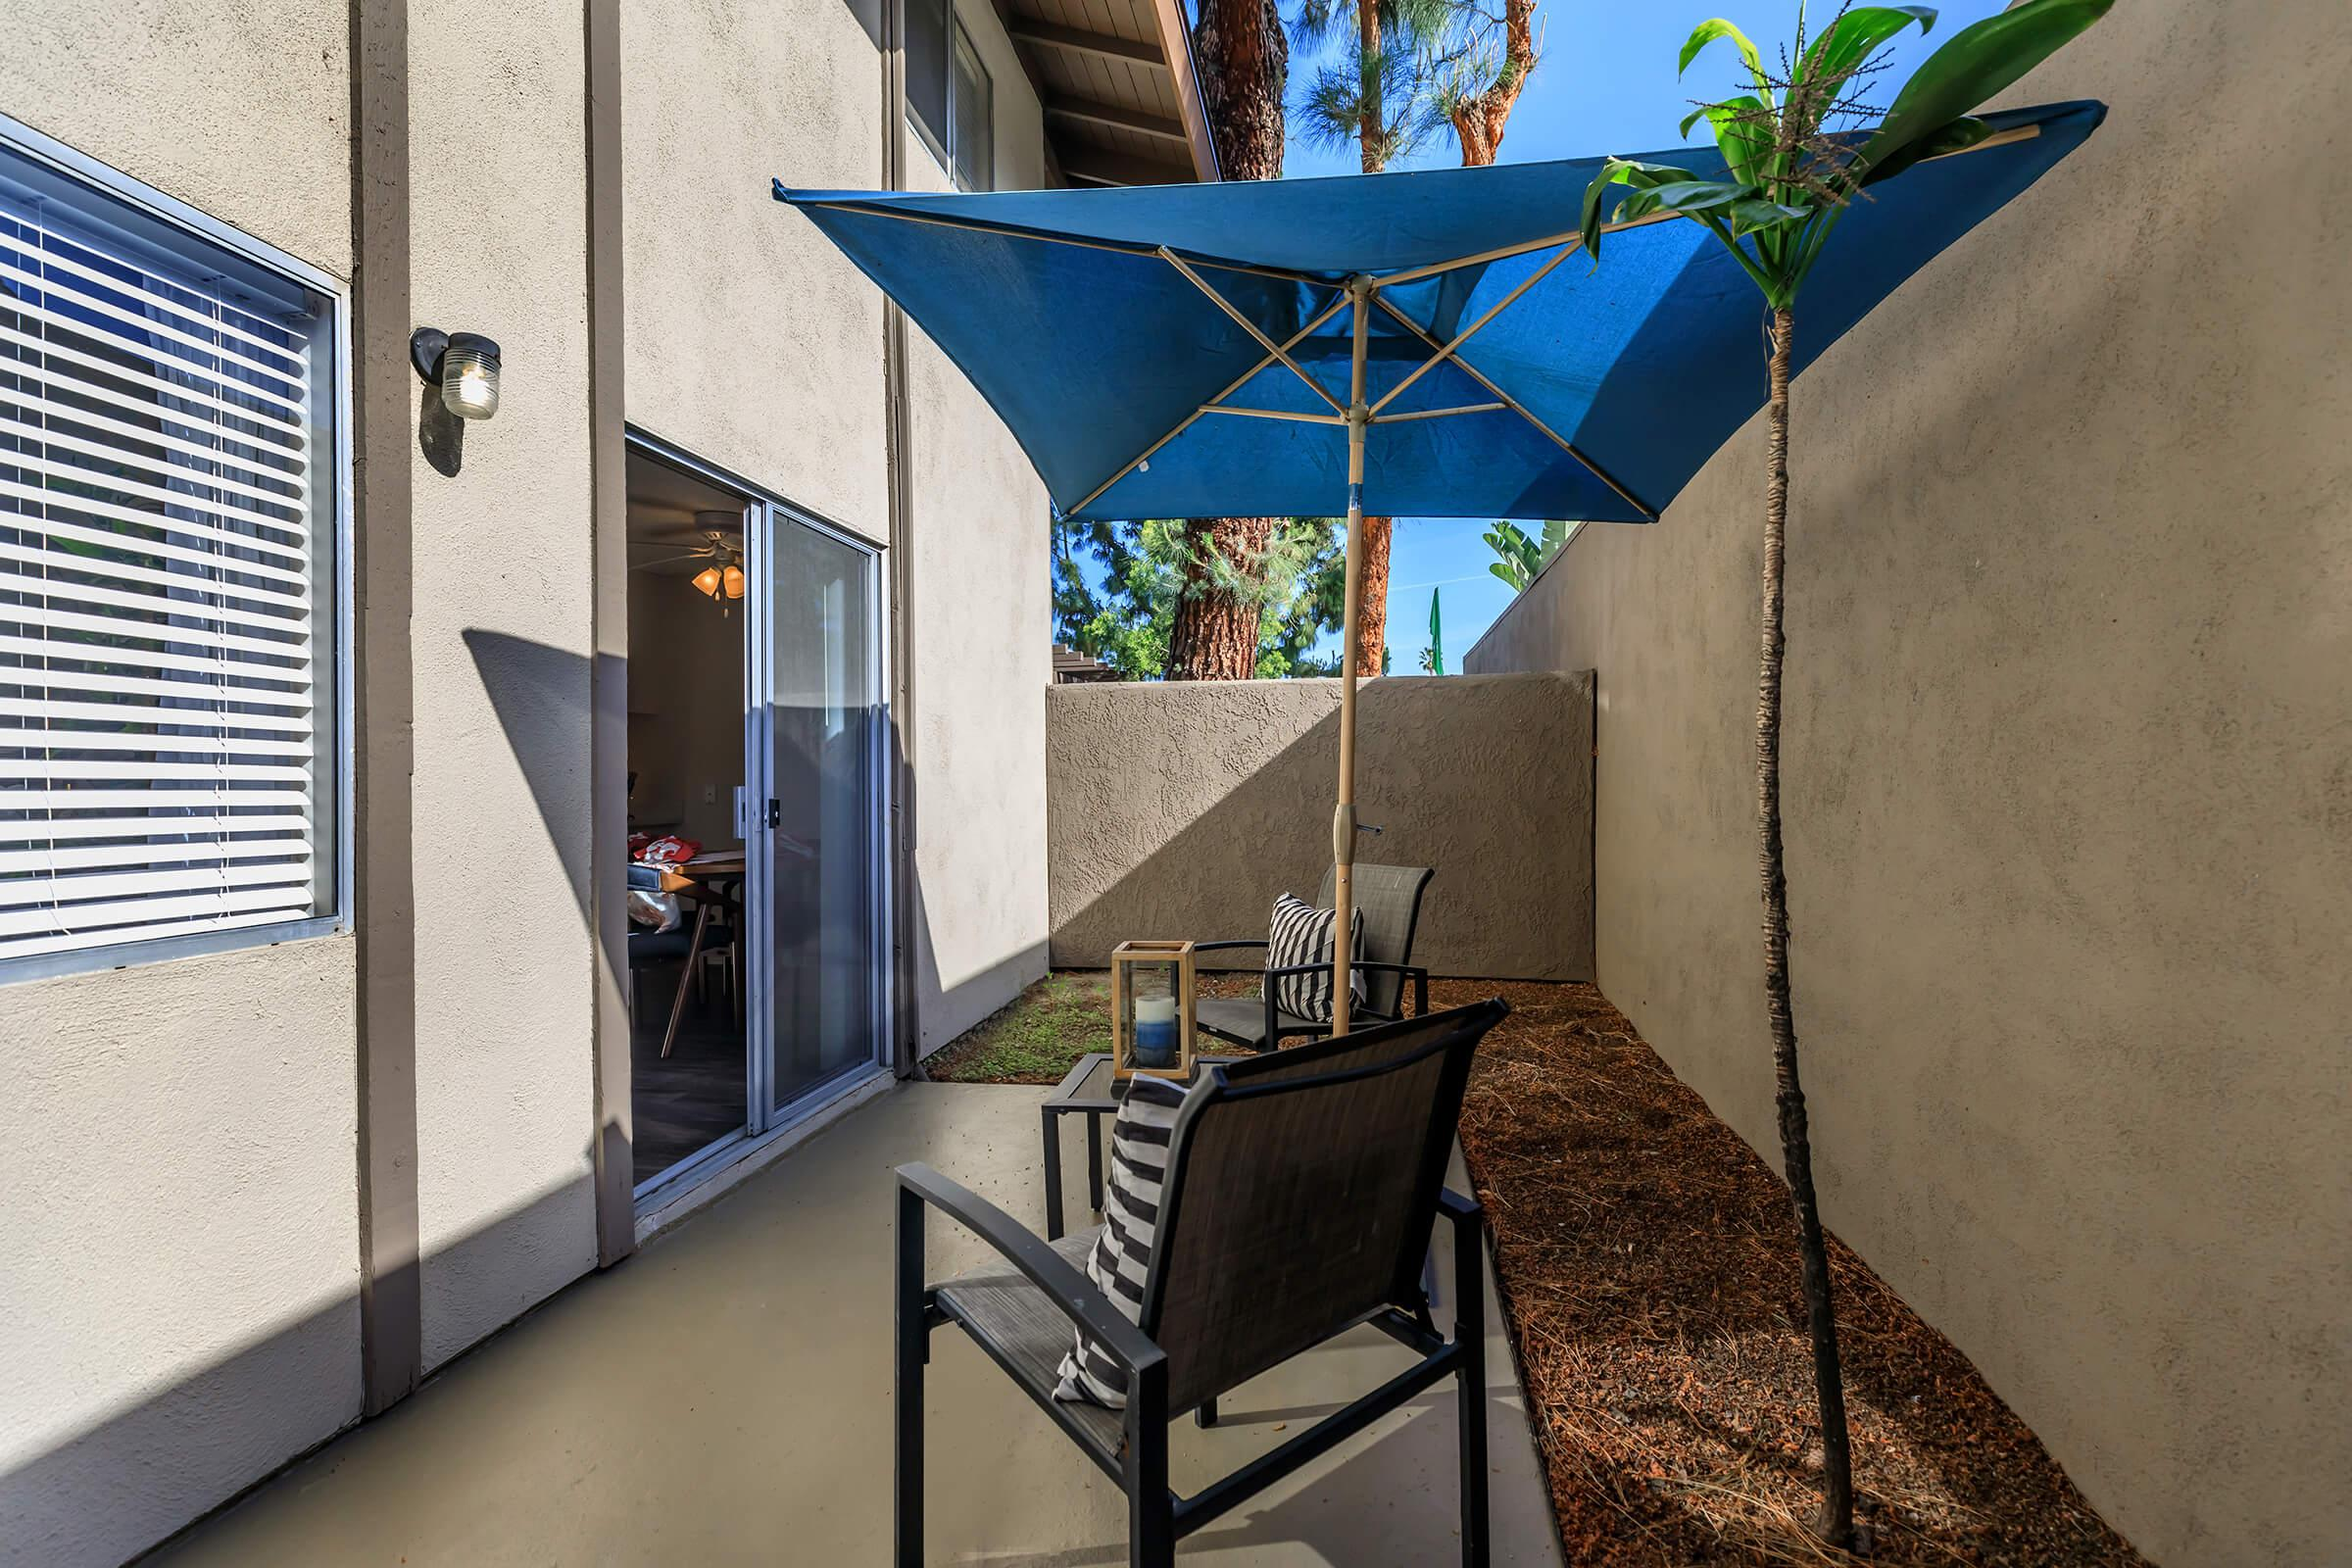 Patio with a table and blue umbrella